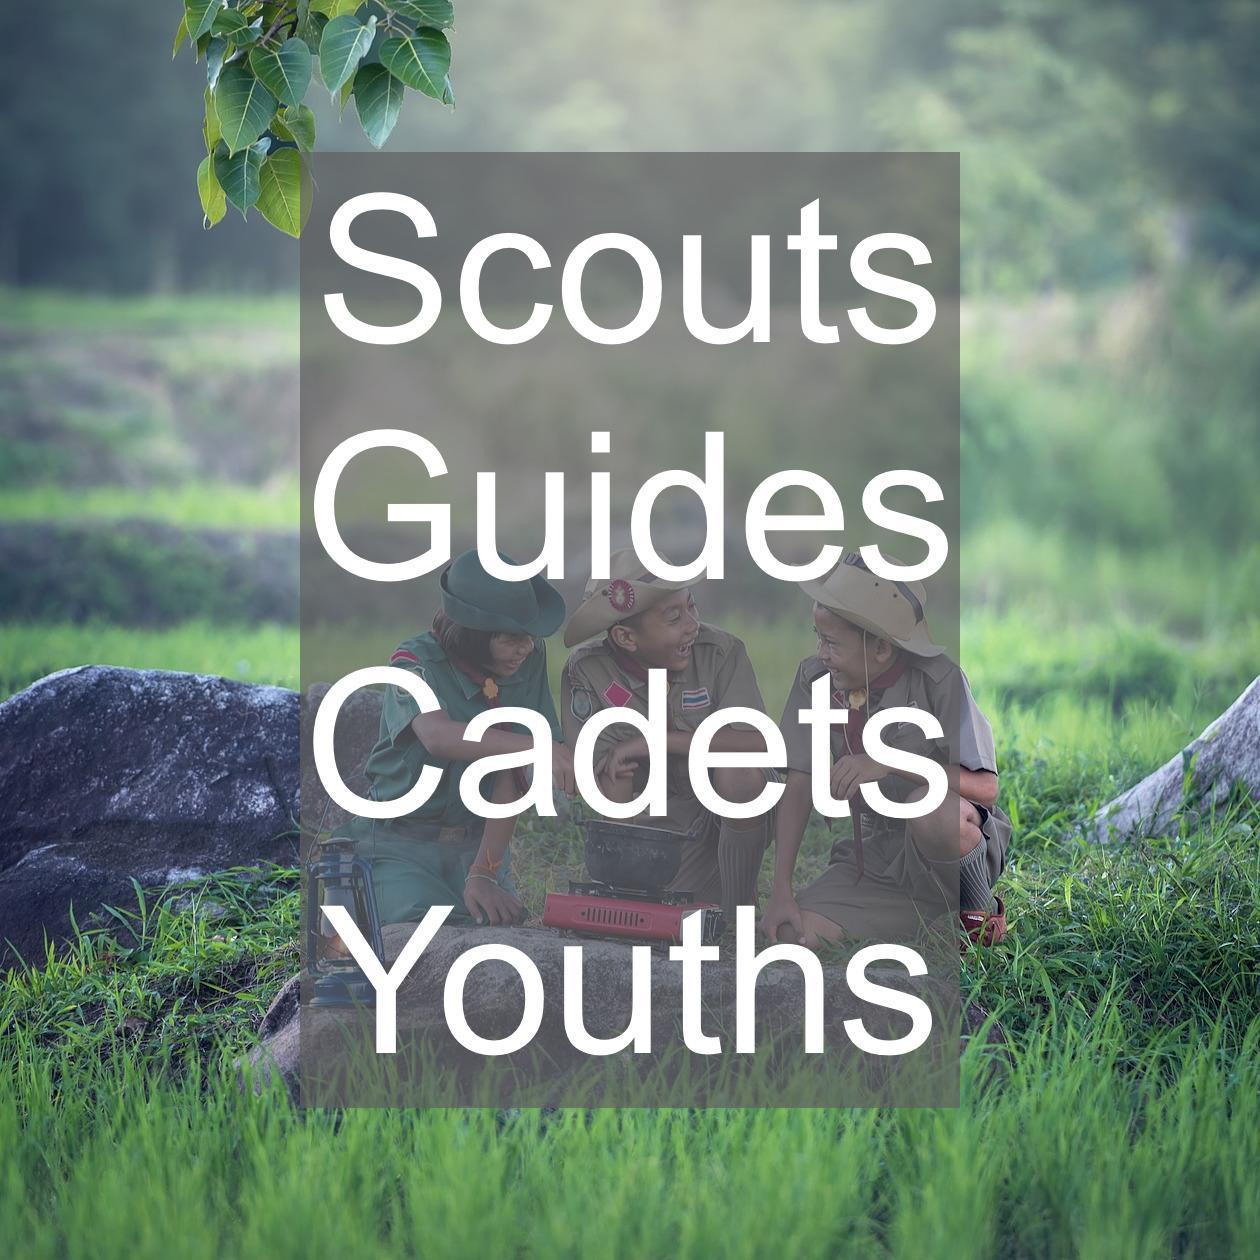 scouts guides cadets and youth groups